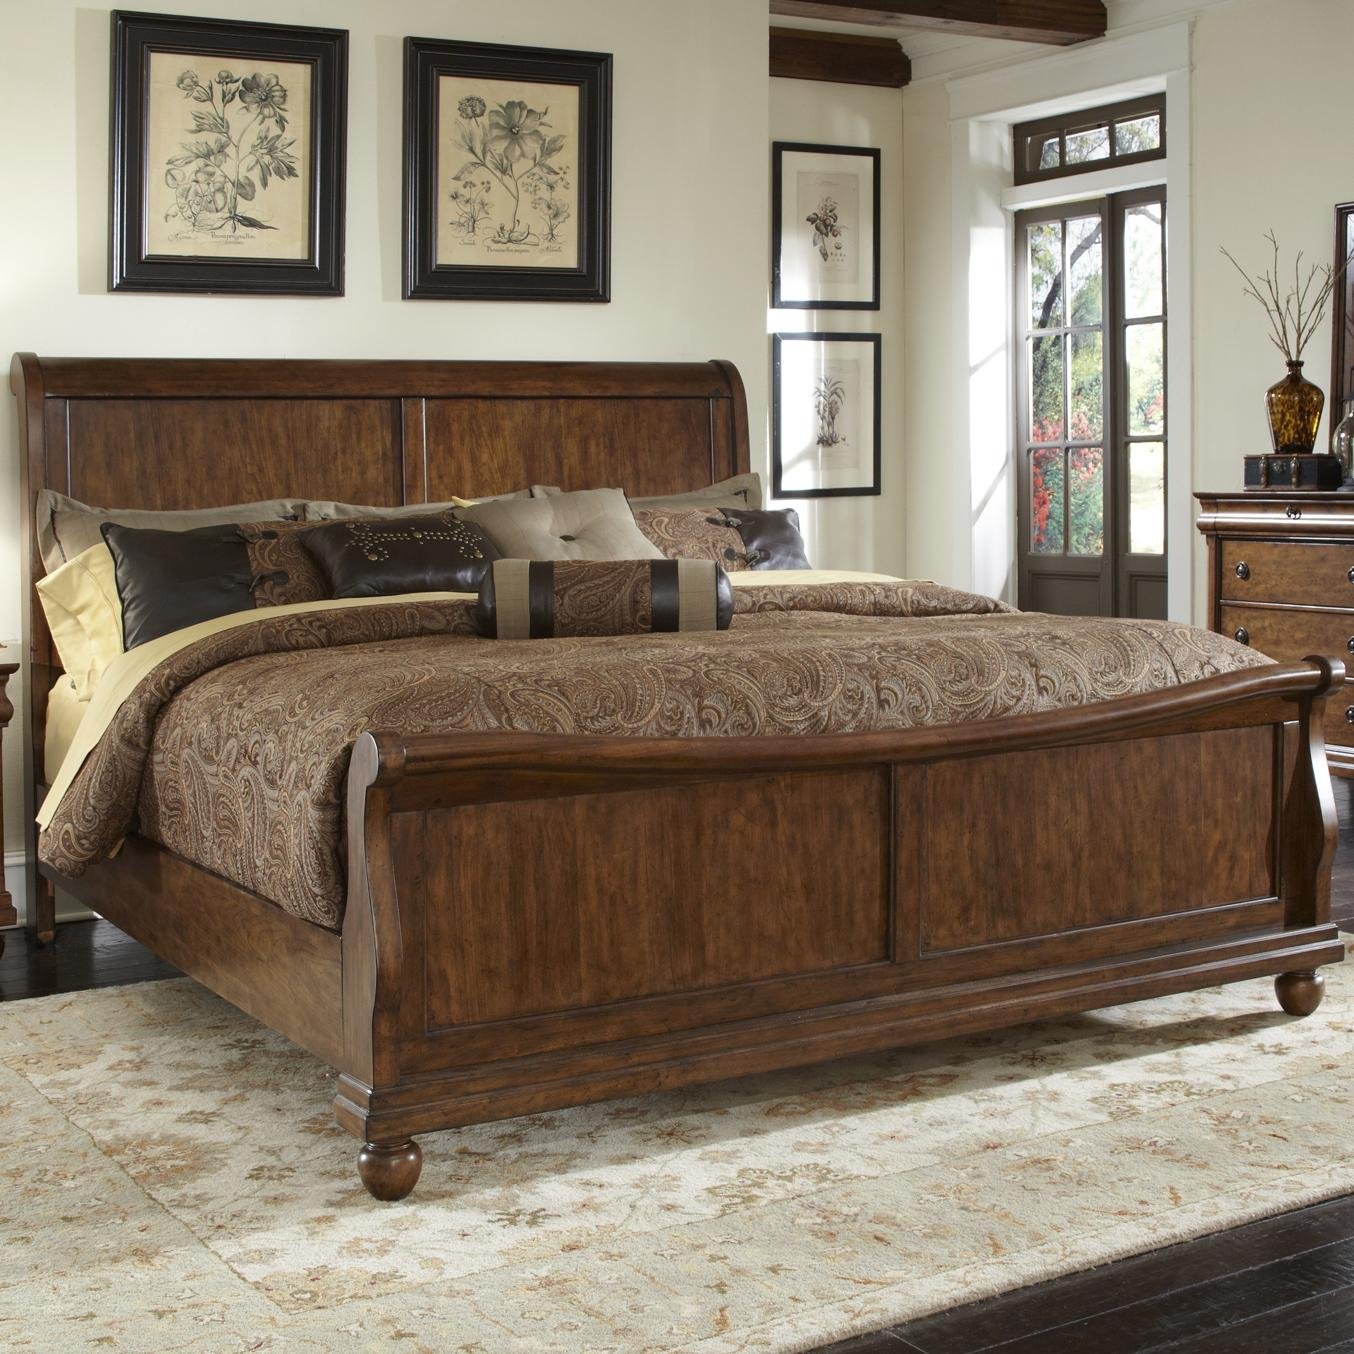 Rustic Traditions Queen Sleigh Bed Set by Liberty Furniture at Northeast Factory Direct